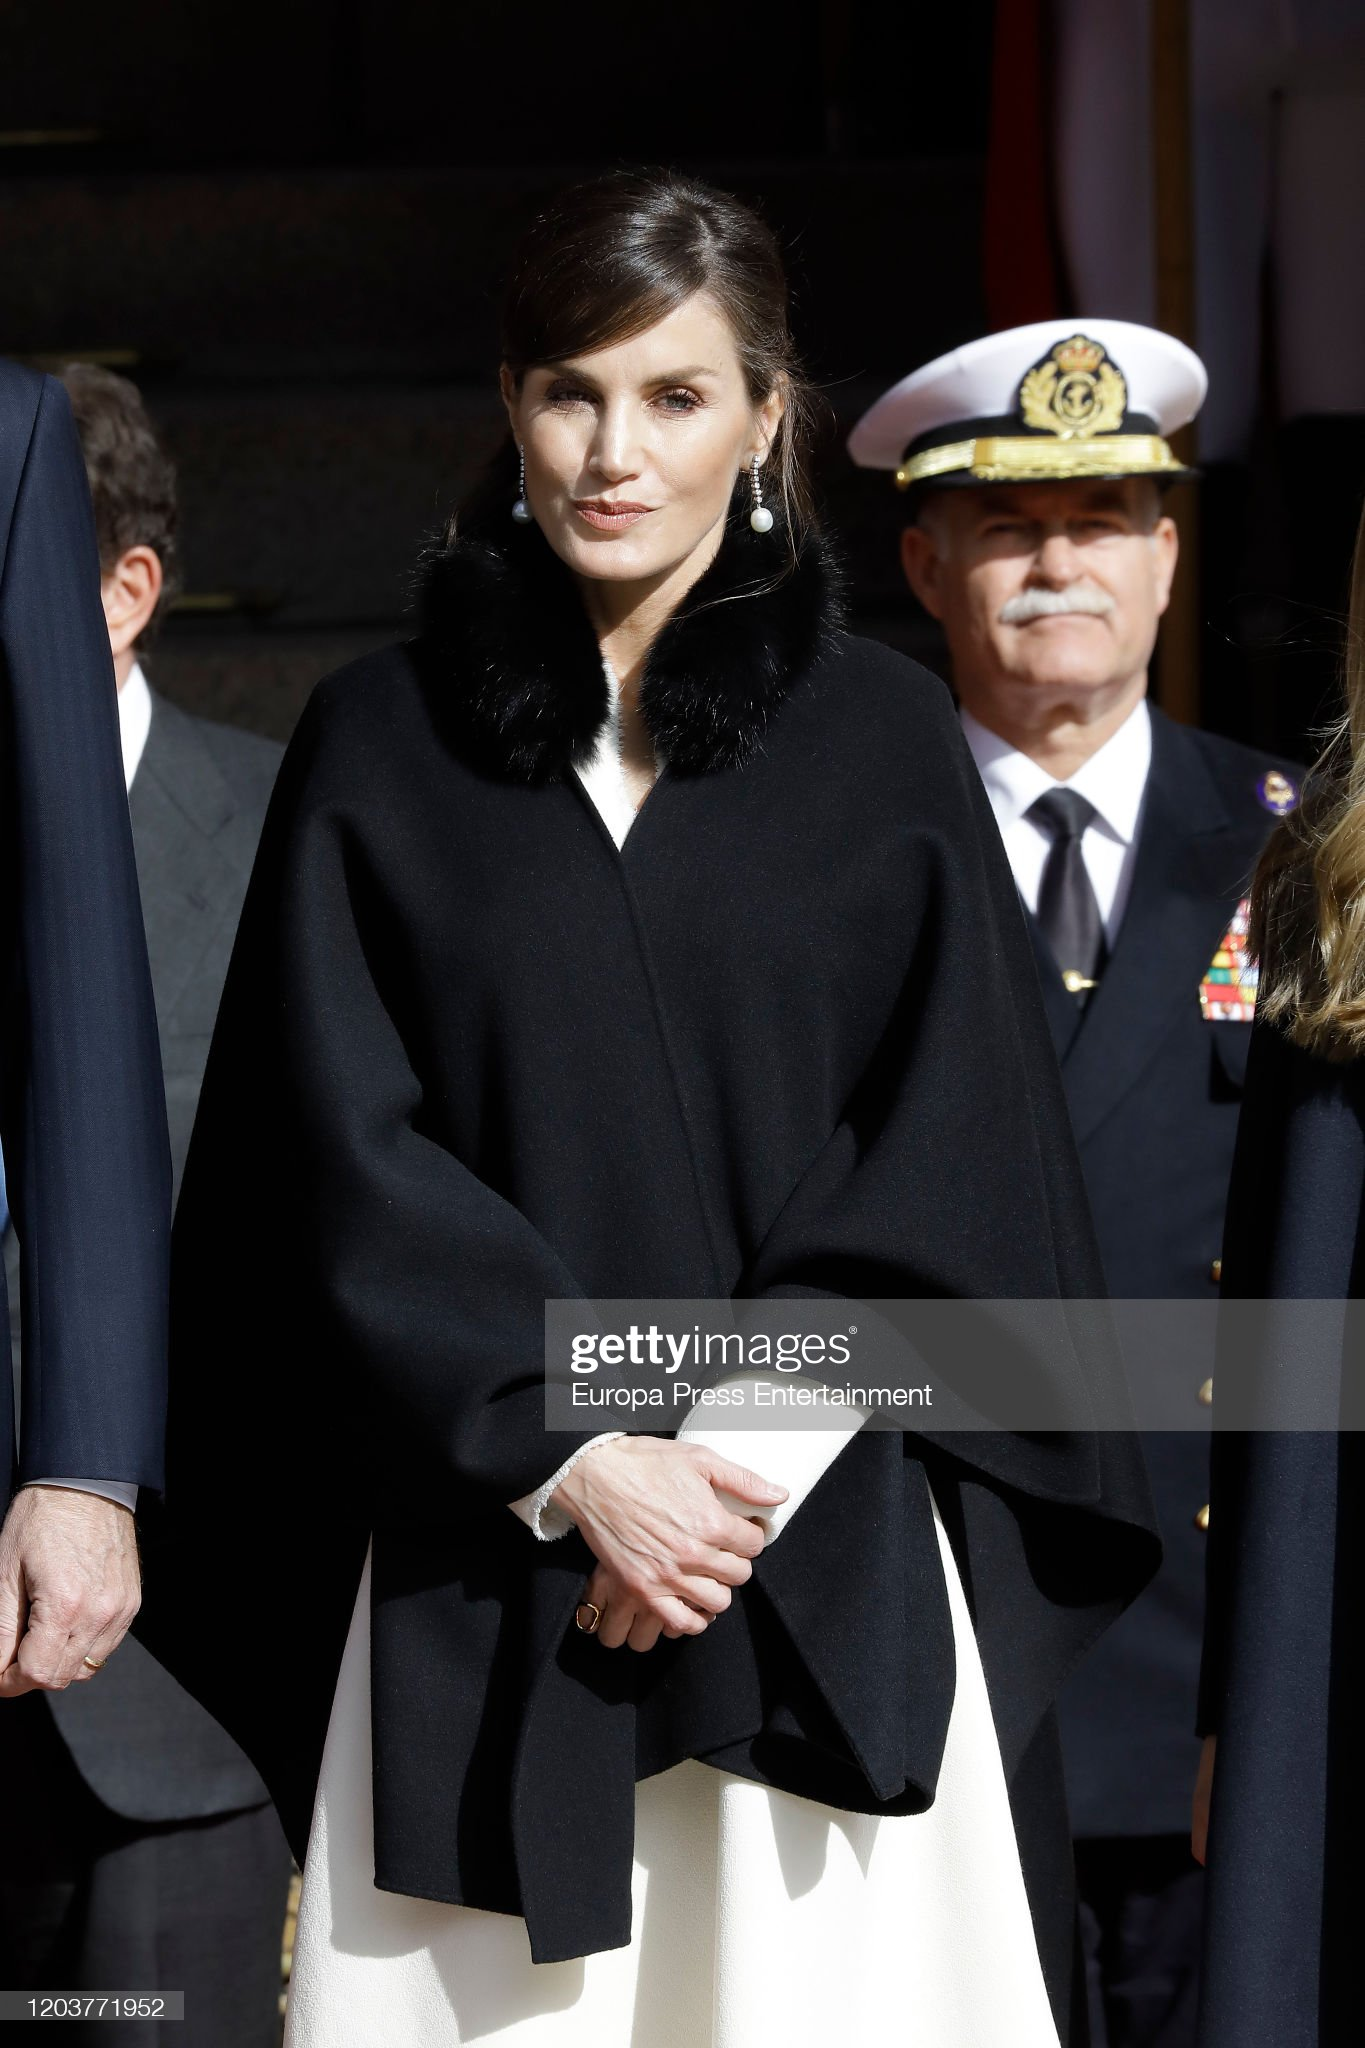 https://media.gettyimages.com/photos/queen-letizia-of-spain-attends-the-solemn-opening-of-the-14th-at-the-picture-id1203771952?s=2048x2048